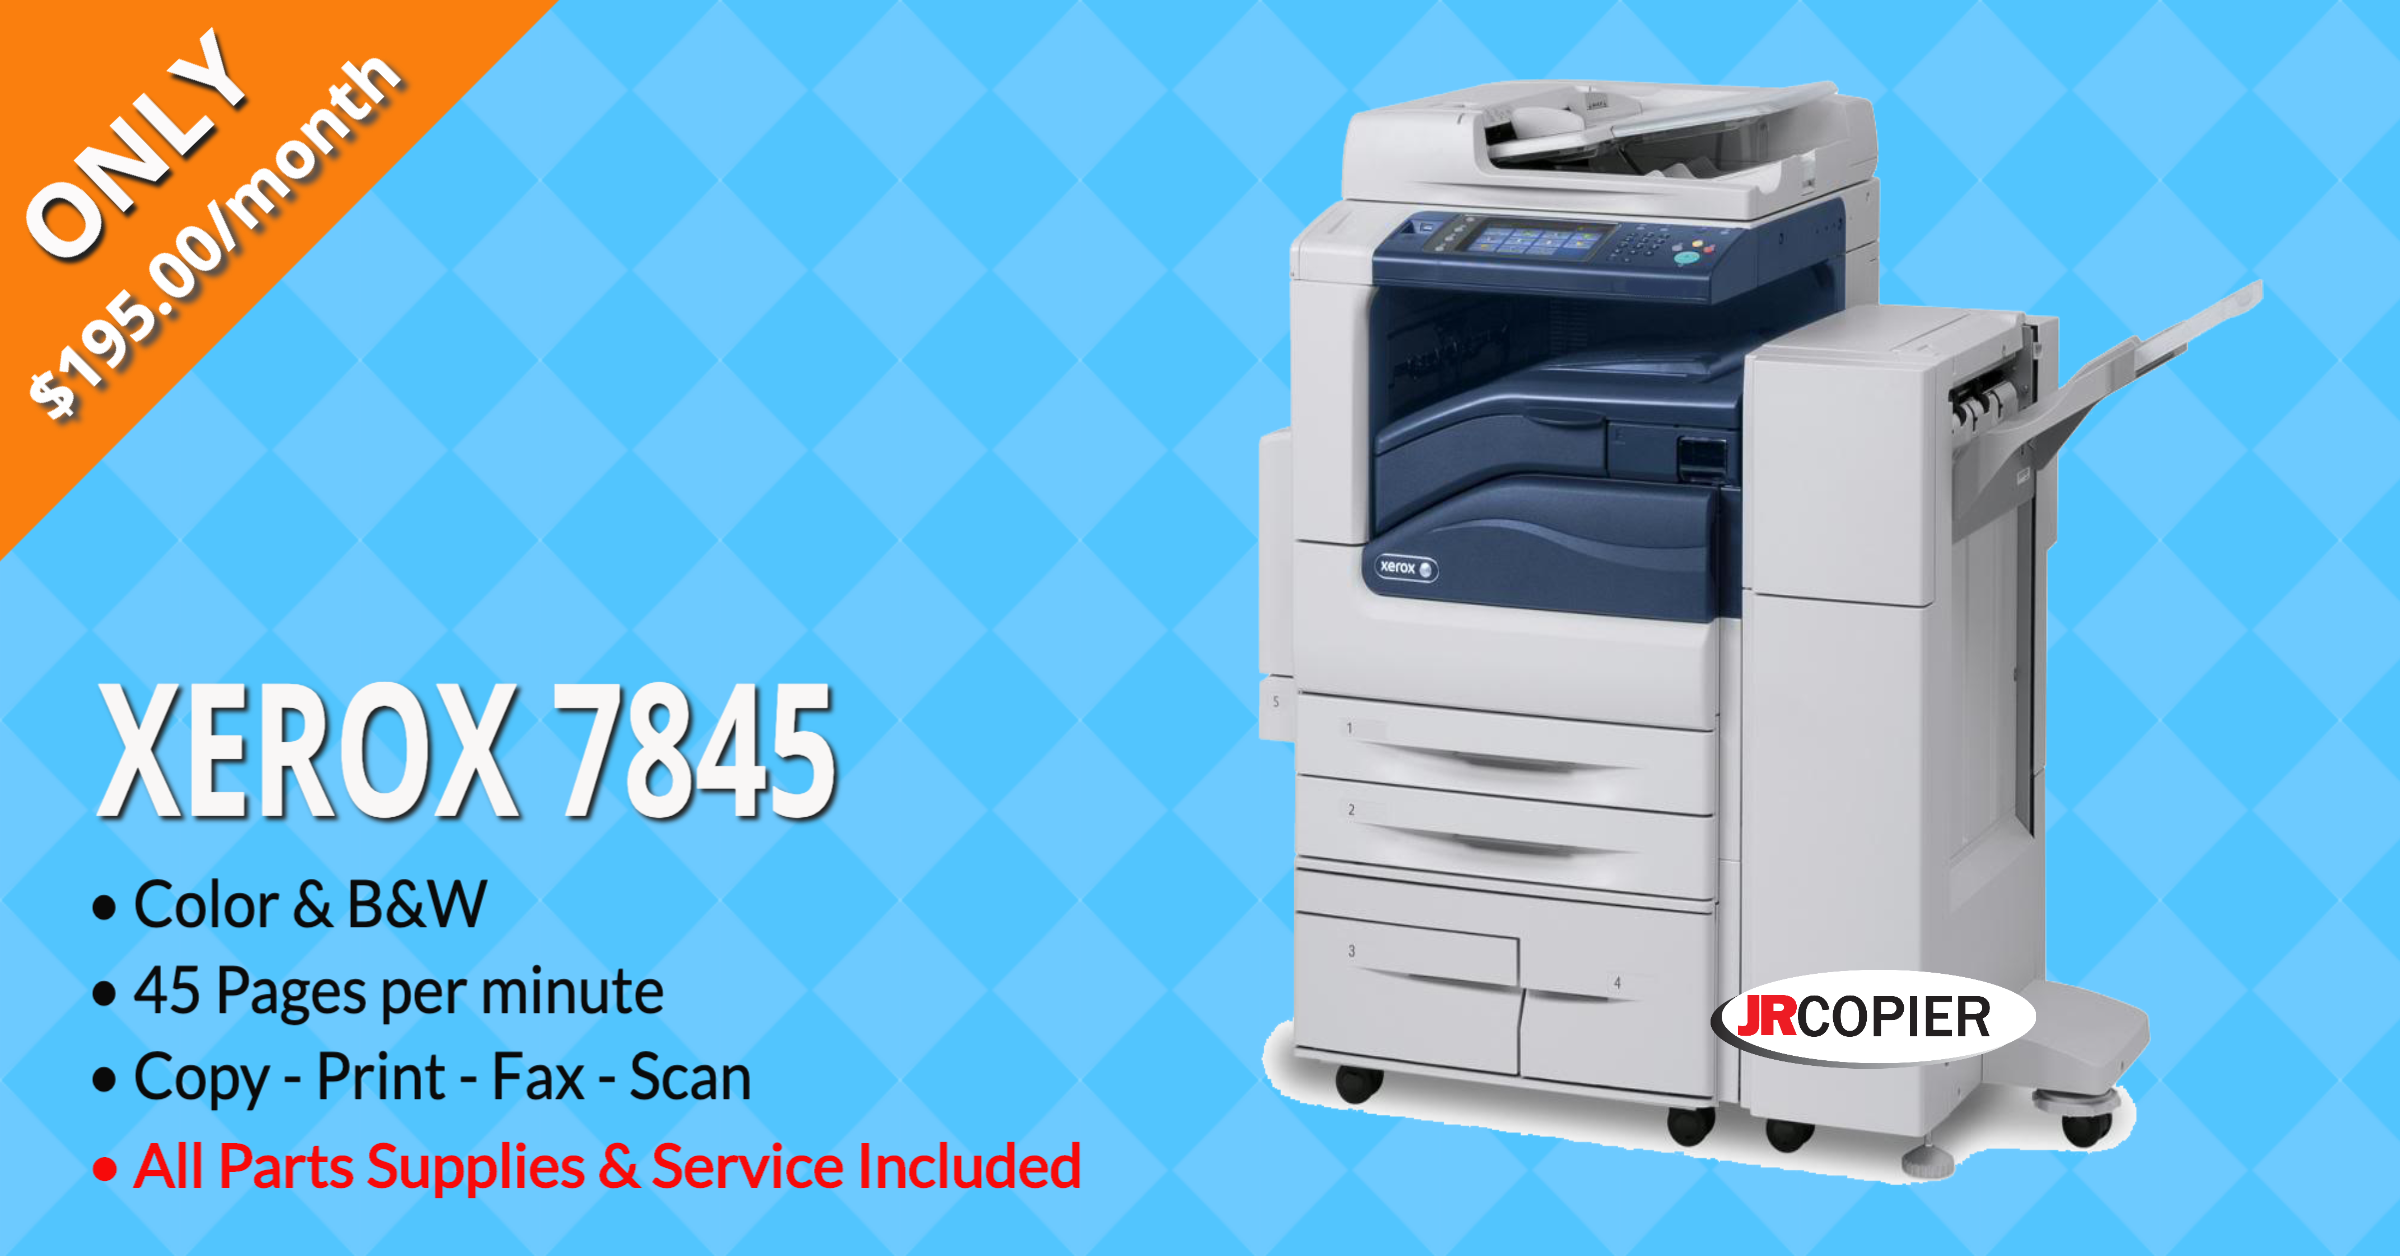 Copy Machine Sales 34677, 34684, 34685, 34688, 34689